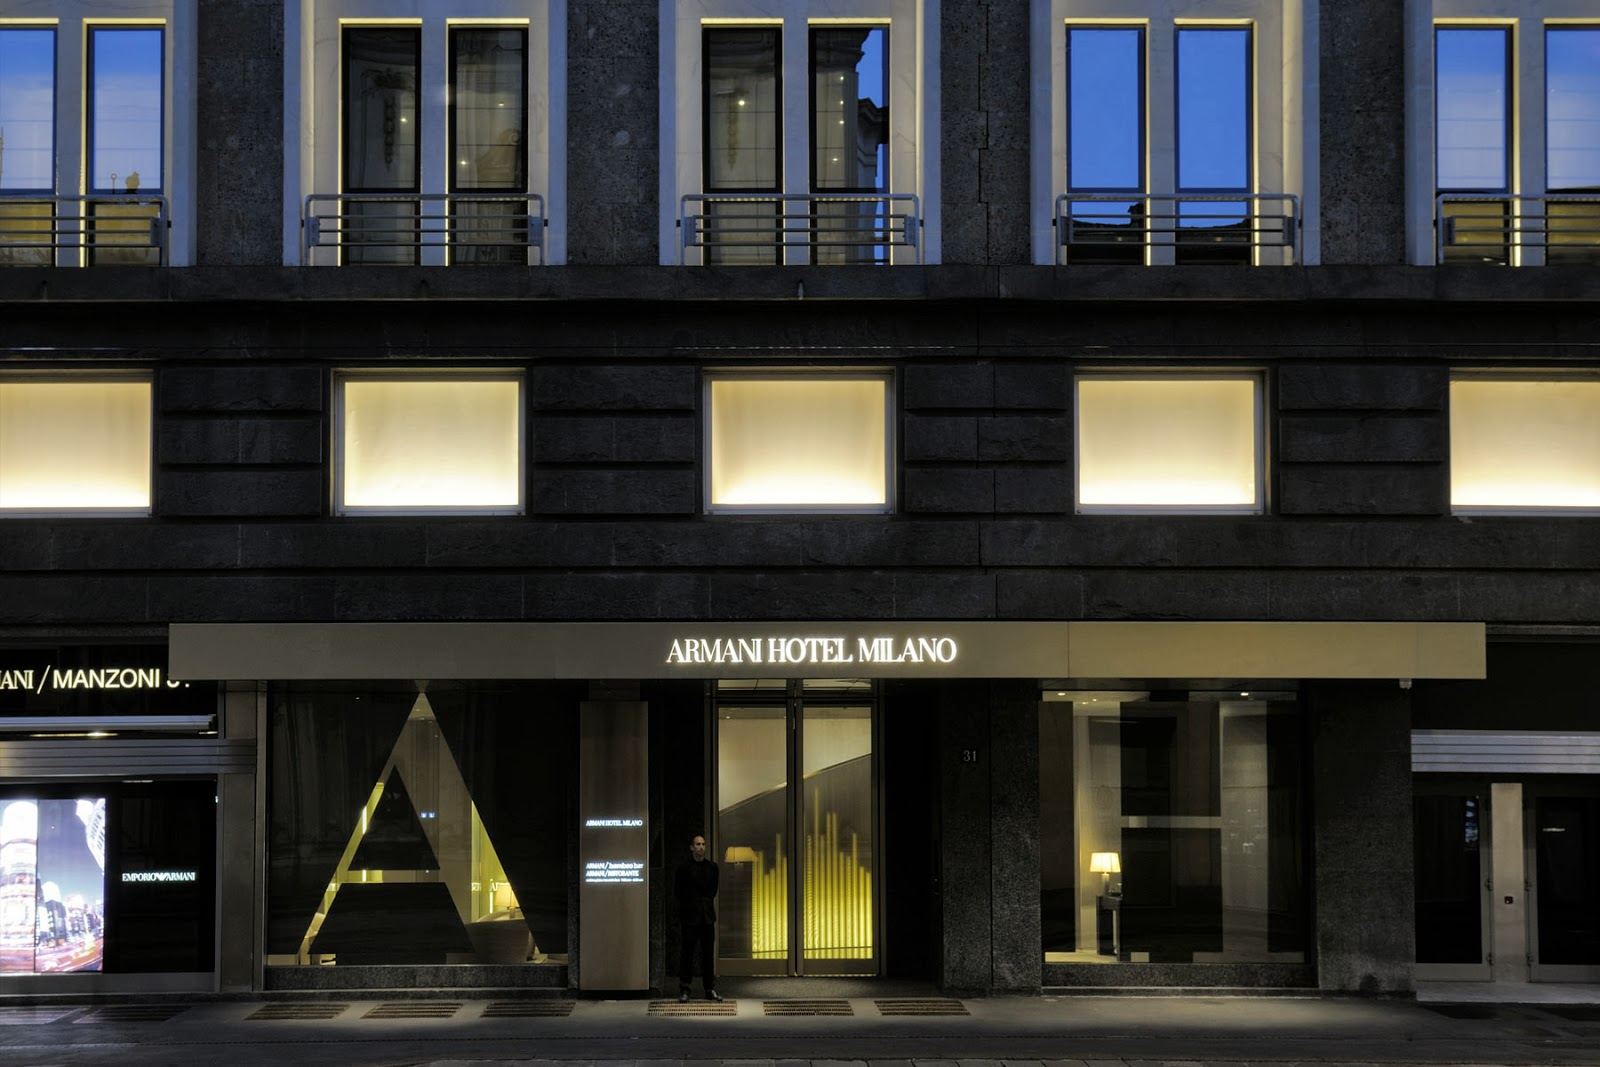 Armani hotel milano luxury 4 7 hotel for Armadi outlet milano